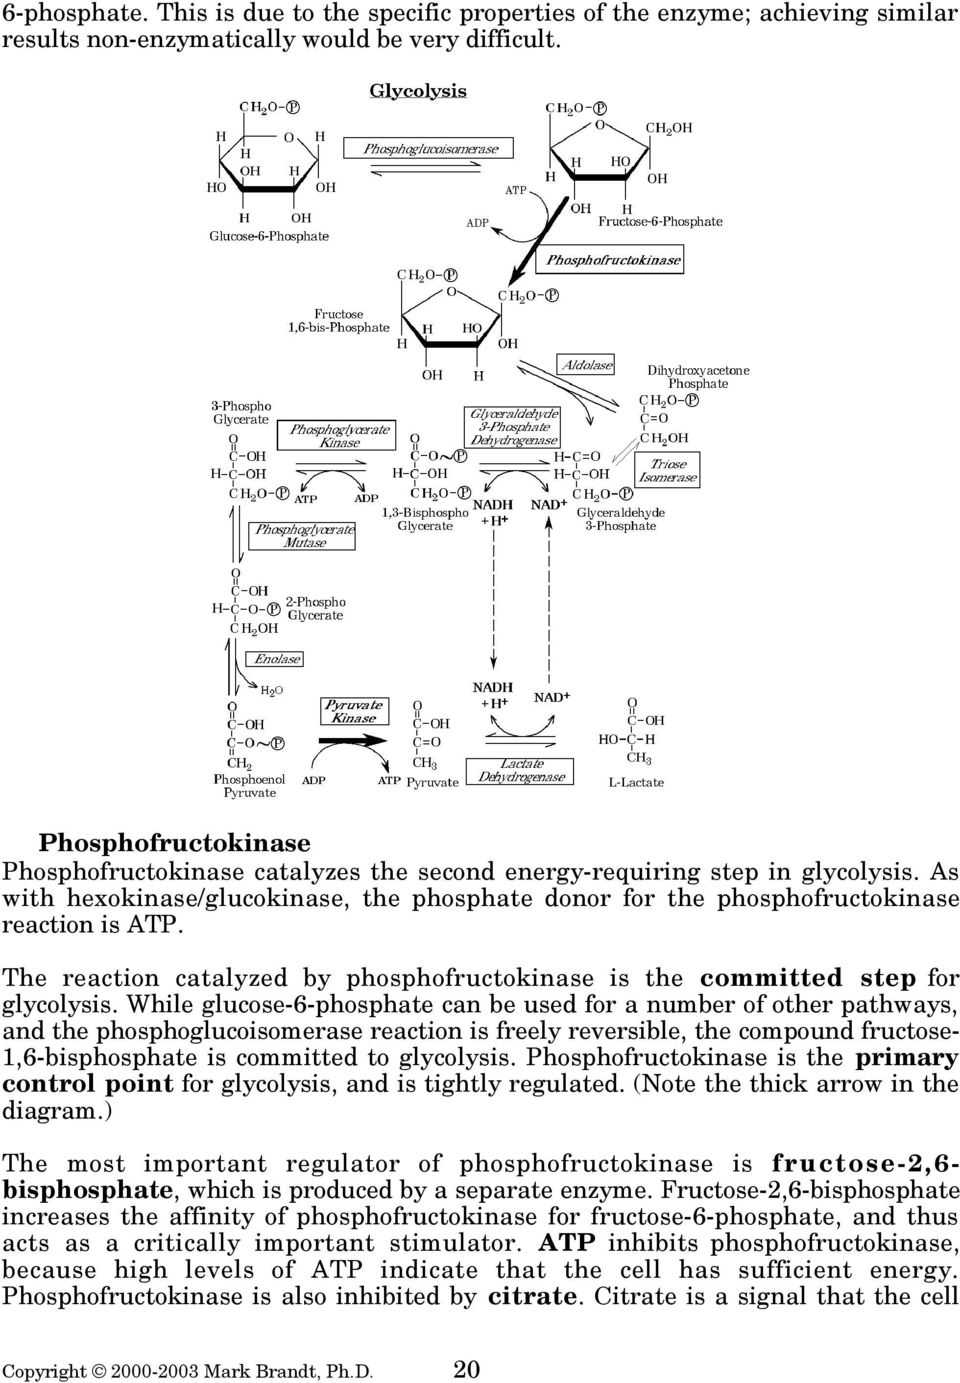 The reaction catalyzed by phosphofructokinase is the committed step for glycolysis.